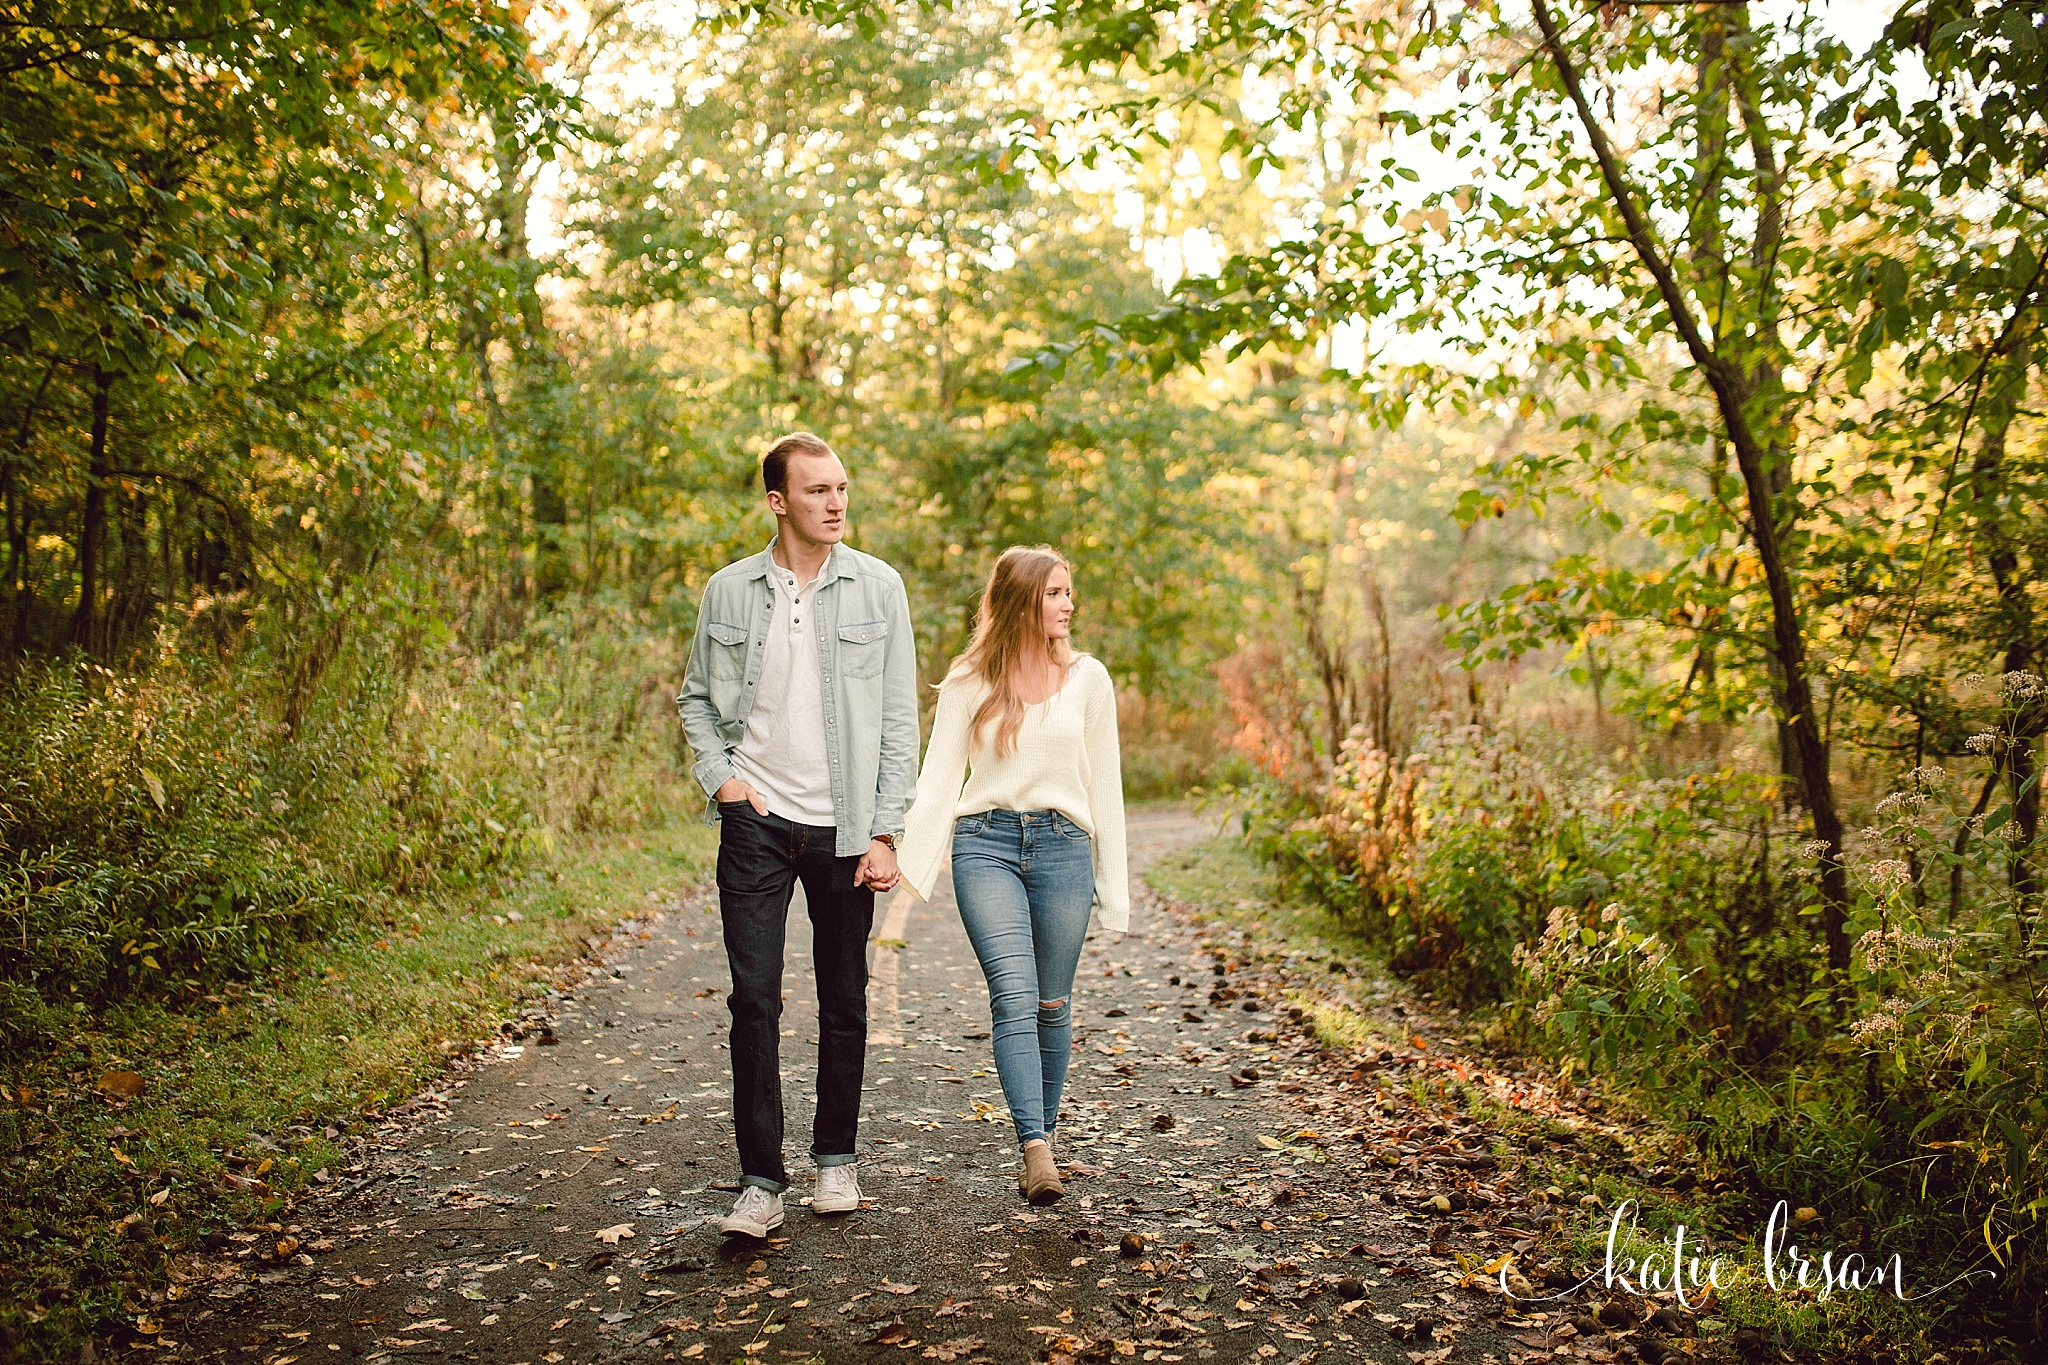 Mokena_EngagementSession_ChicagoWeddingPhotographer_1190.jpg